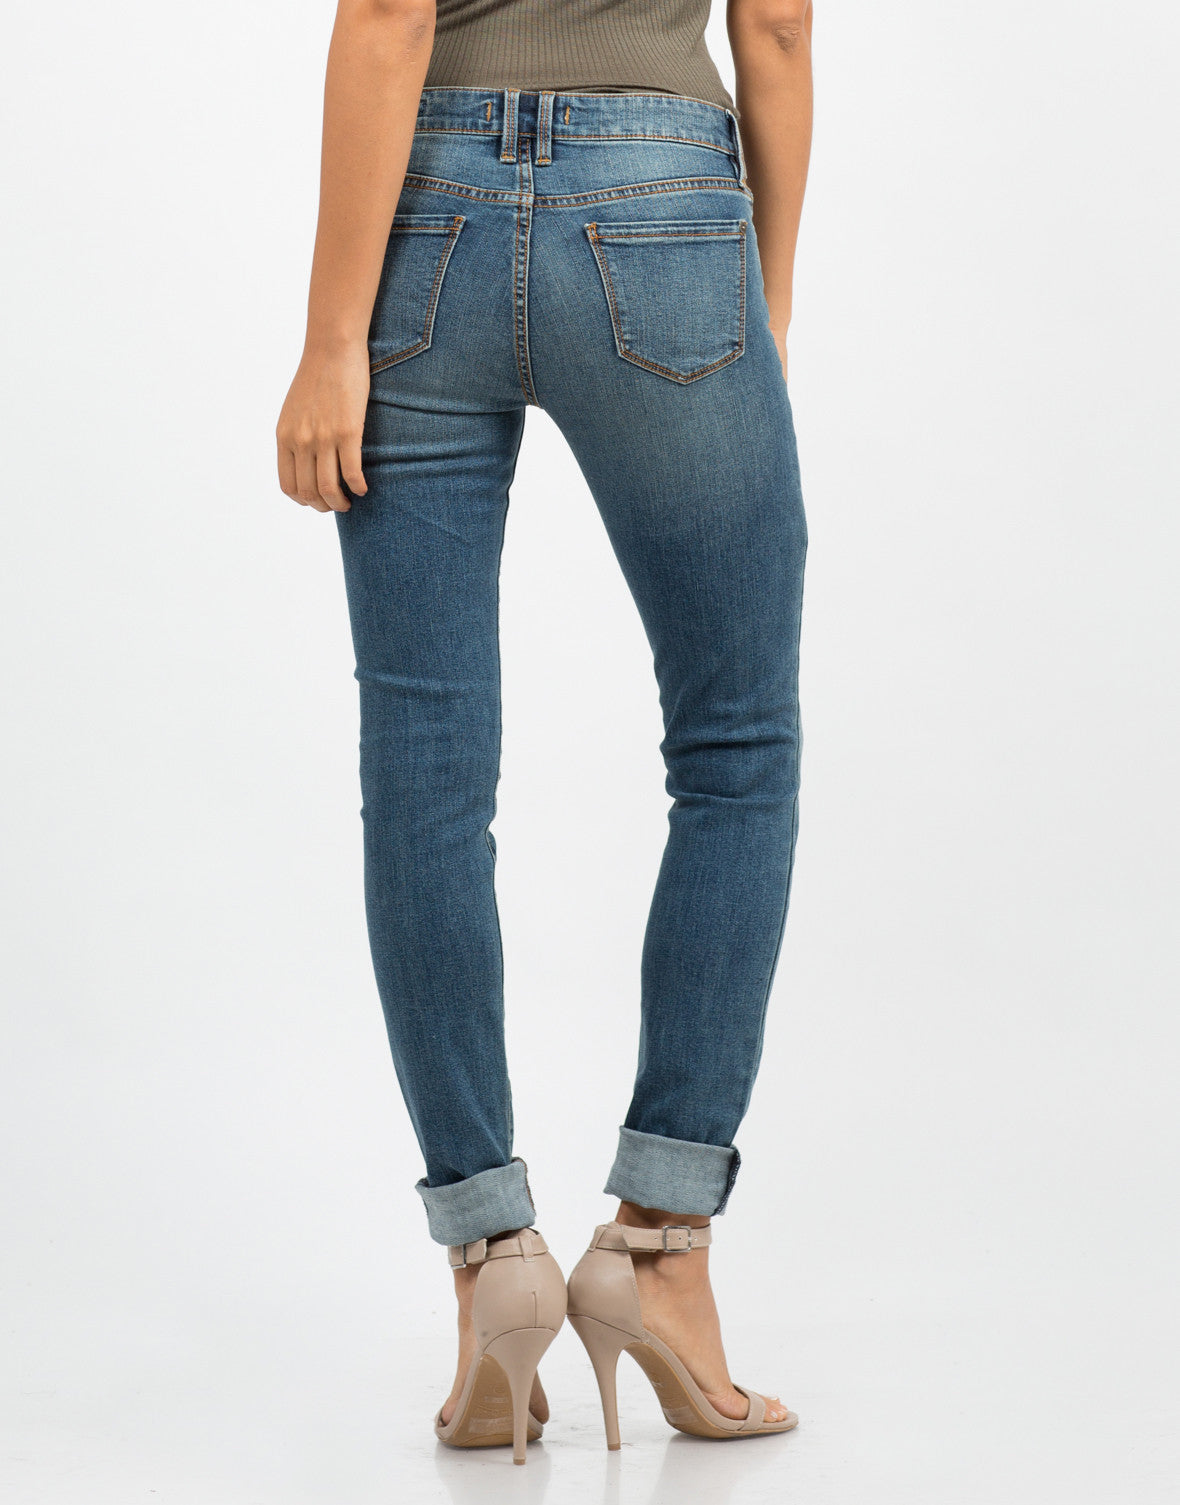 Back View of Mid Rise Skinny Jeans